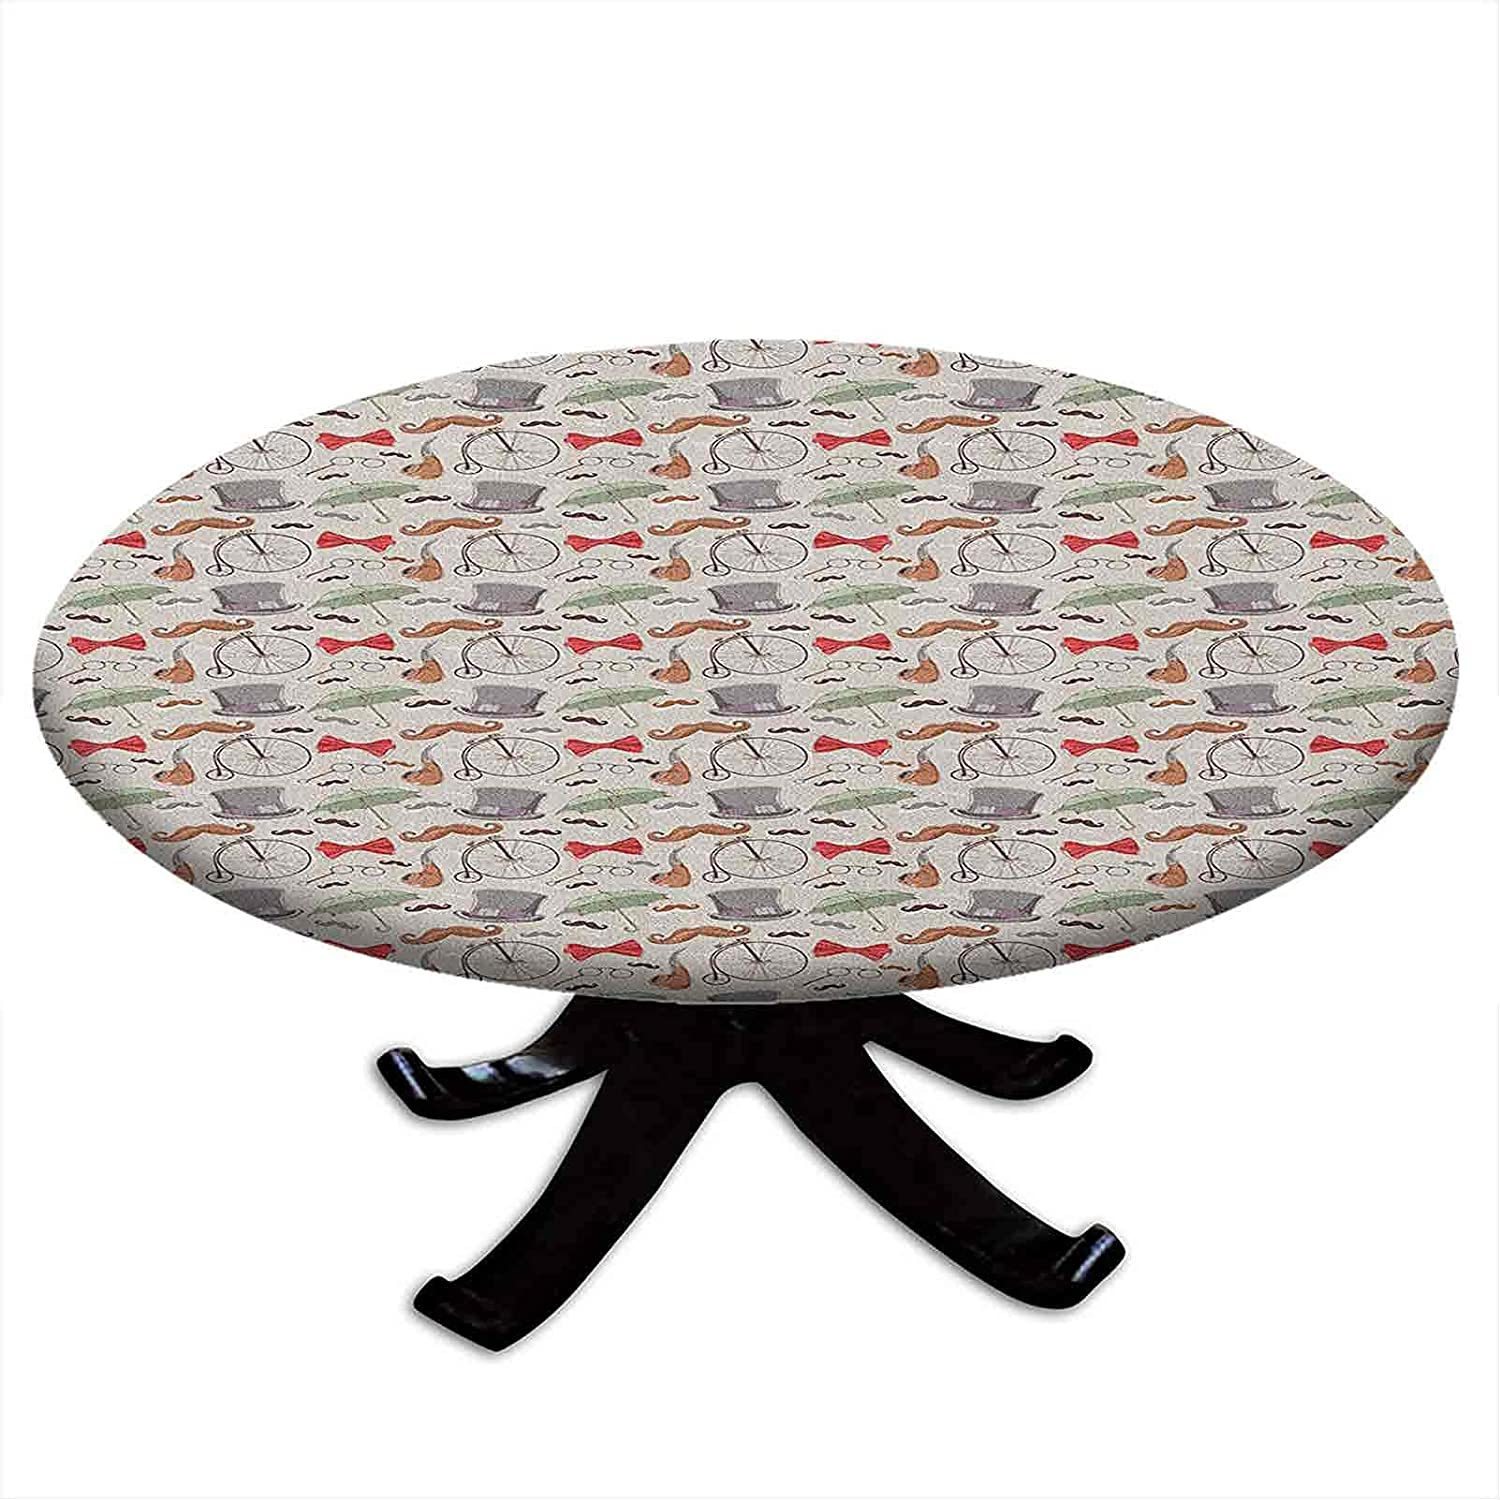 Round Alternative dealer Fitted Bicycle Tablecloth 1940s Objects Bic Animer and price revision High of Wheel